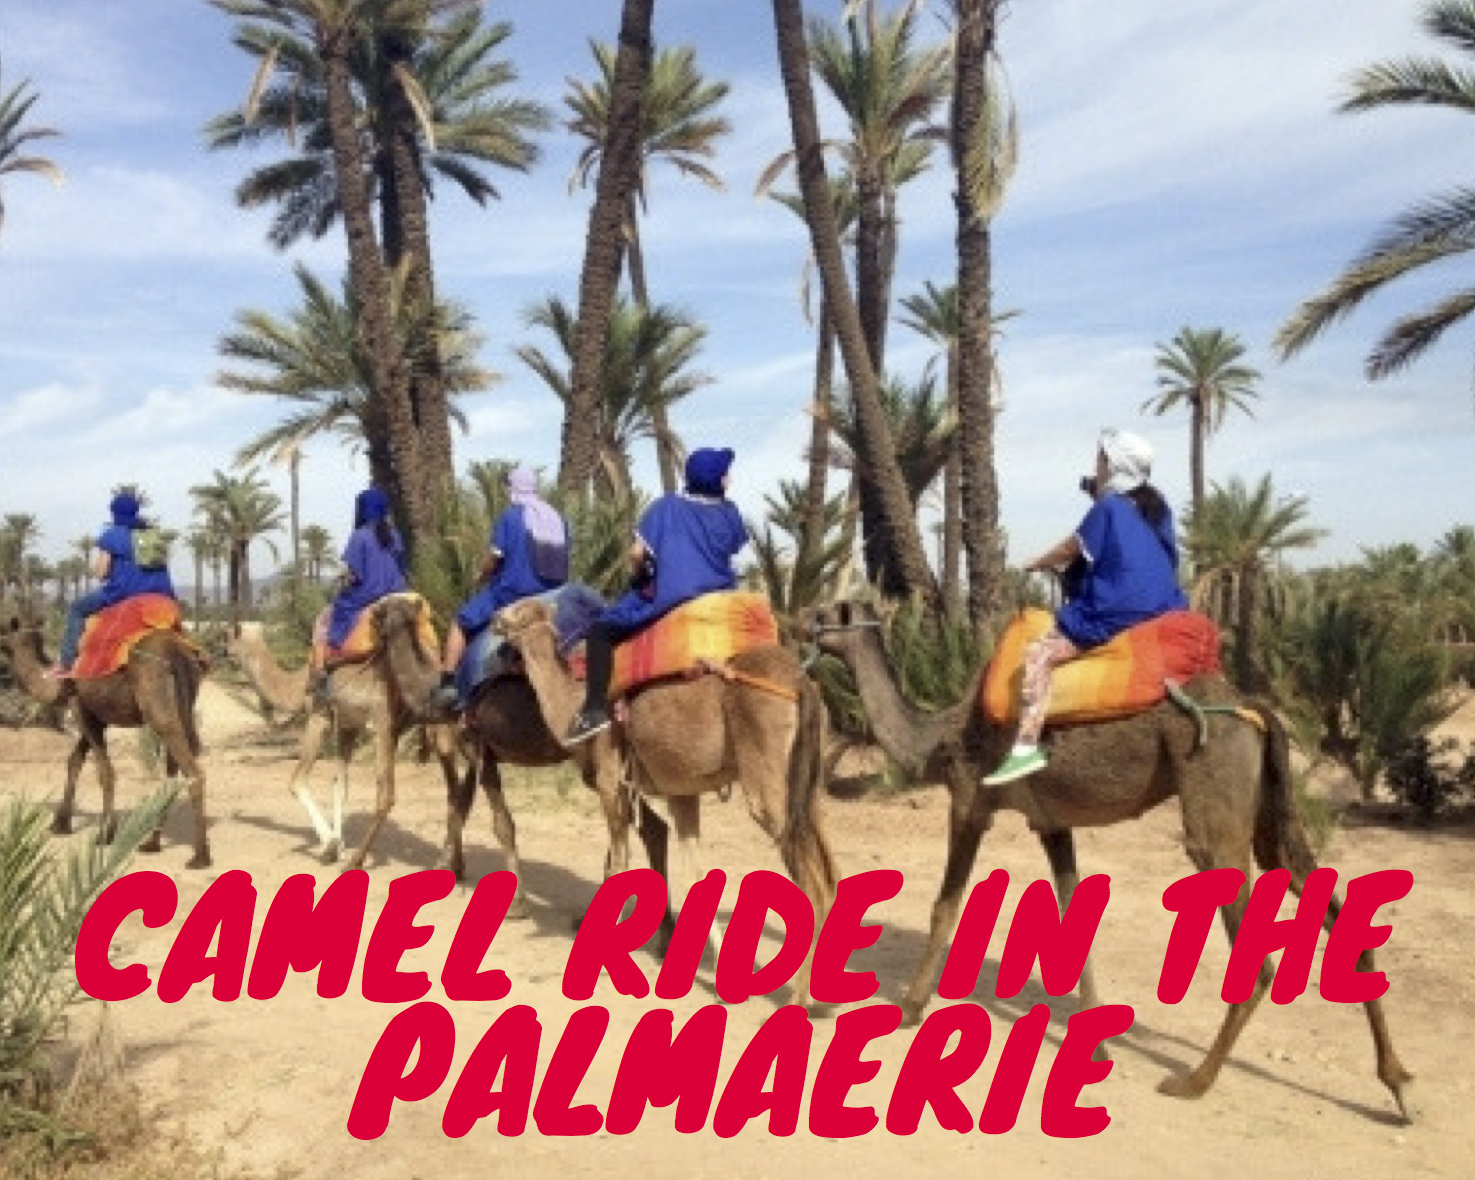 CAMEL RIDE IN THE PALMAERIE